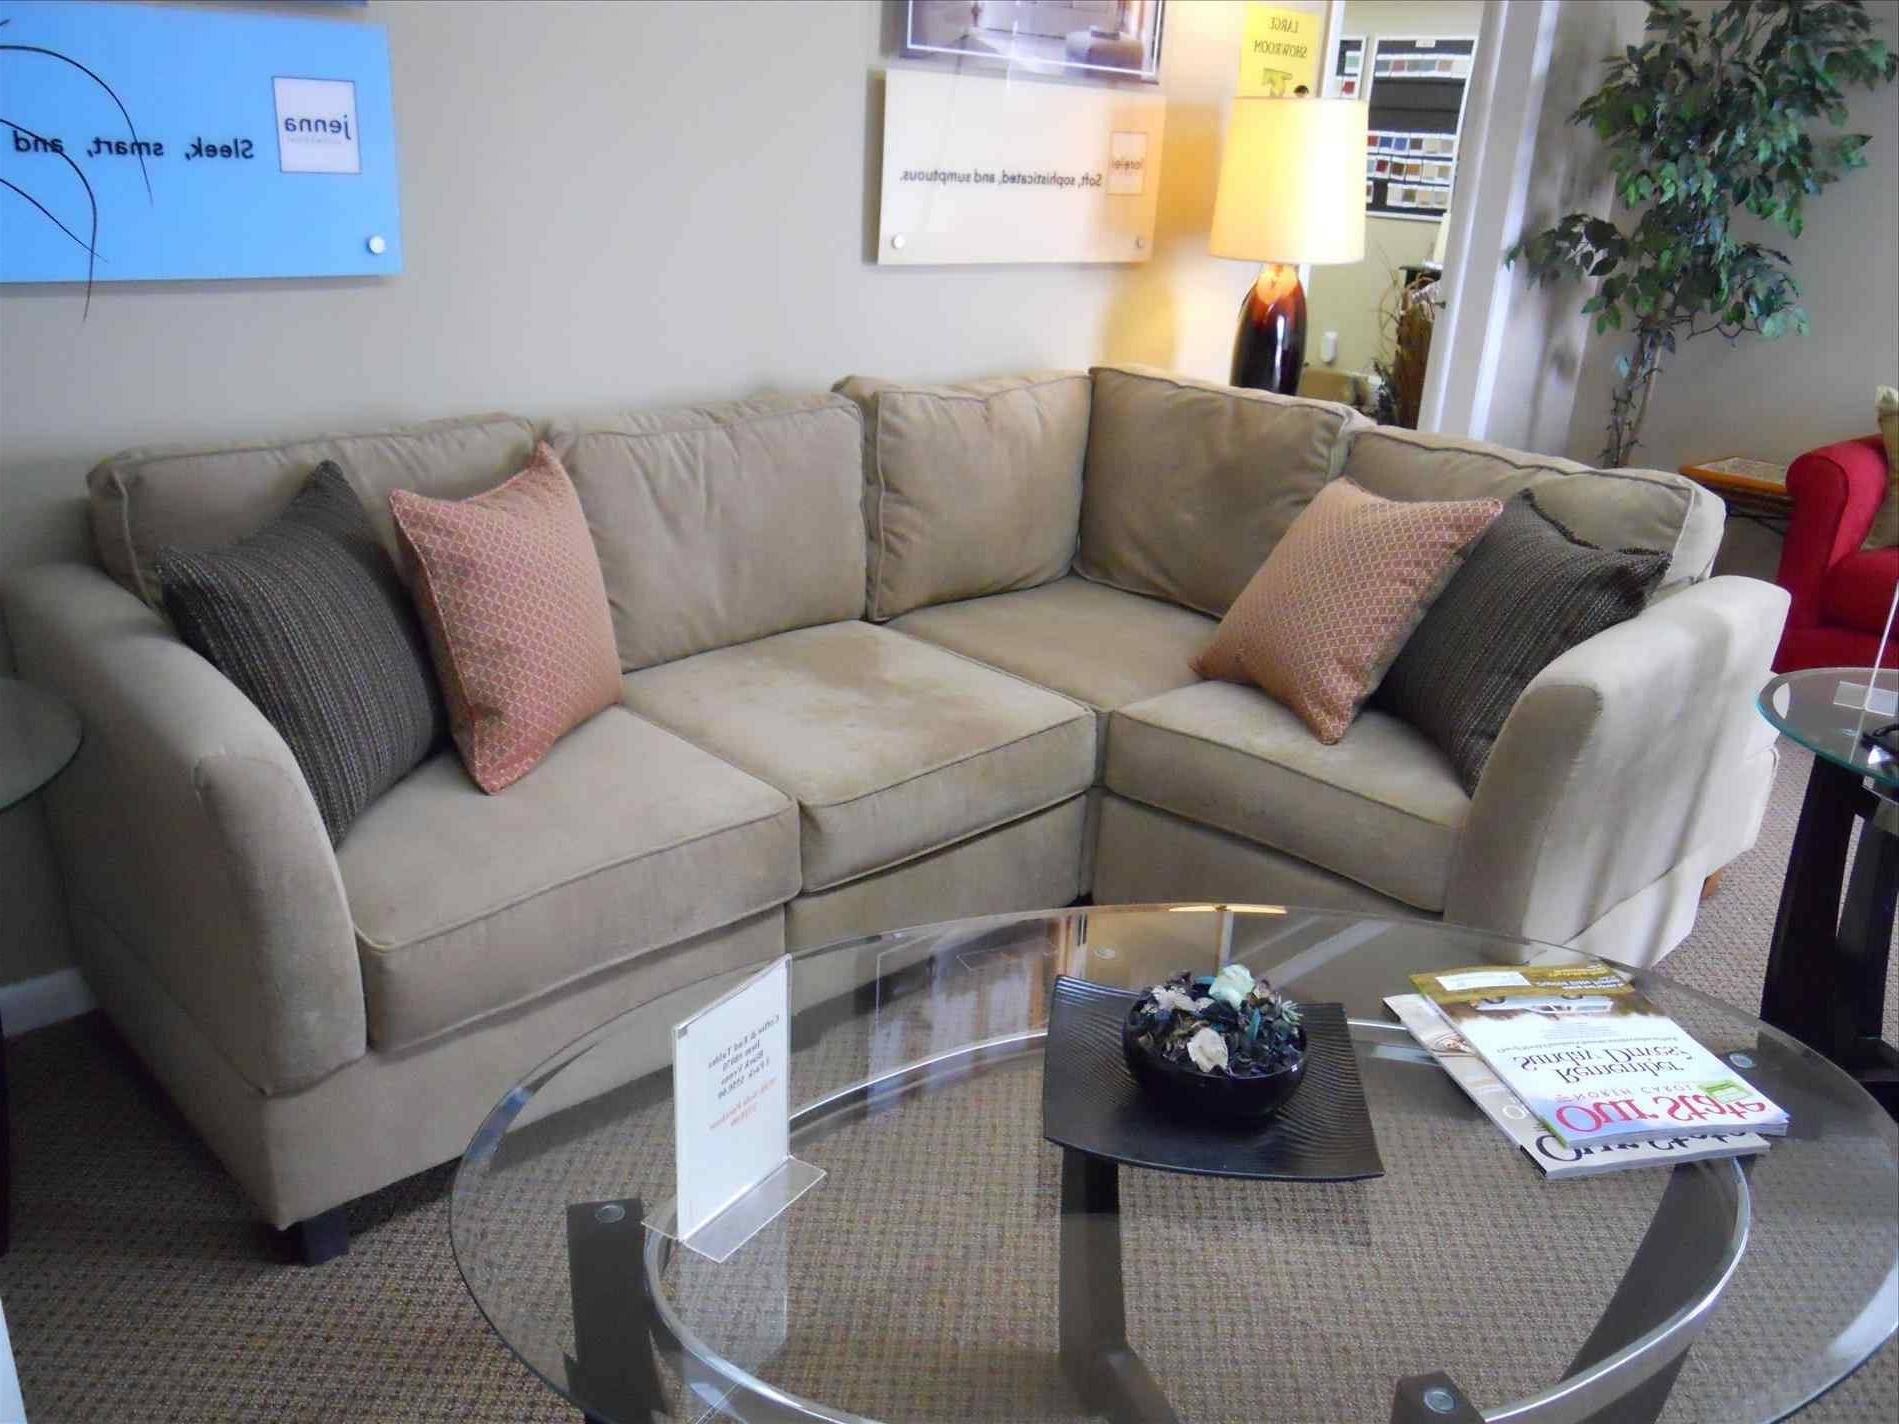 Most Popular For Cozy Living Room Lazy Boy Chair Home Designs Lazy Sectional Intended For Lazy Boy Sectional Sofas (View 9 of 15)